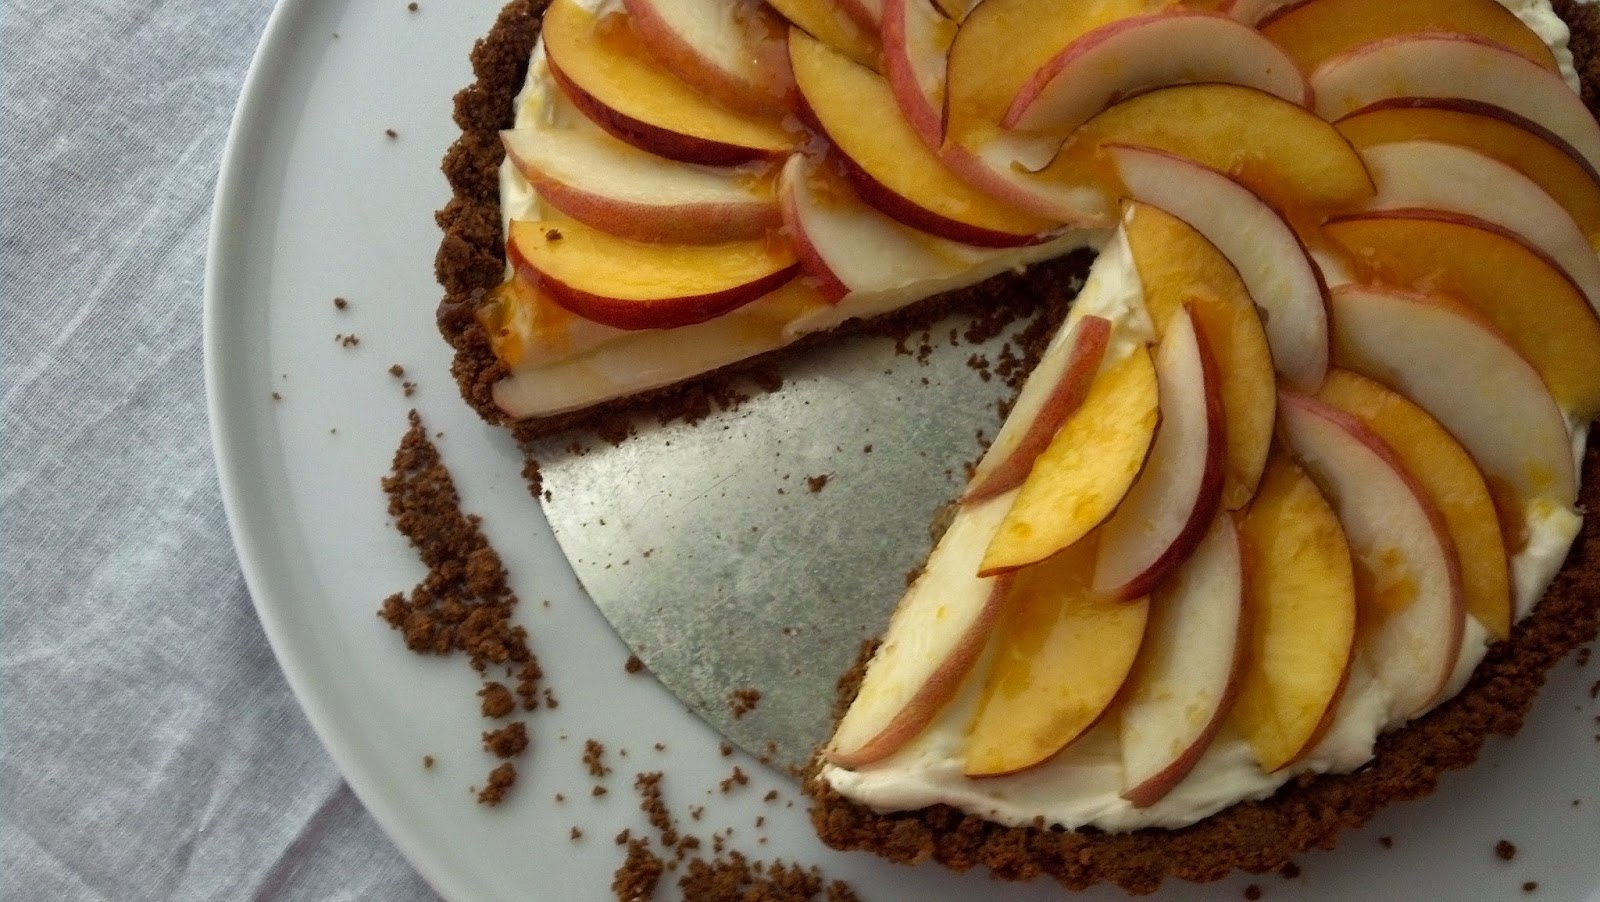 ... ™: Stone Fruit and Mascarpone Tart with Triple Ginger Cookie Crust